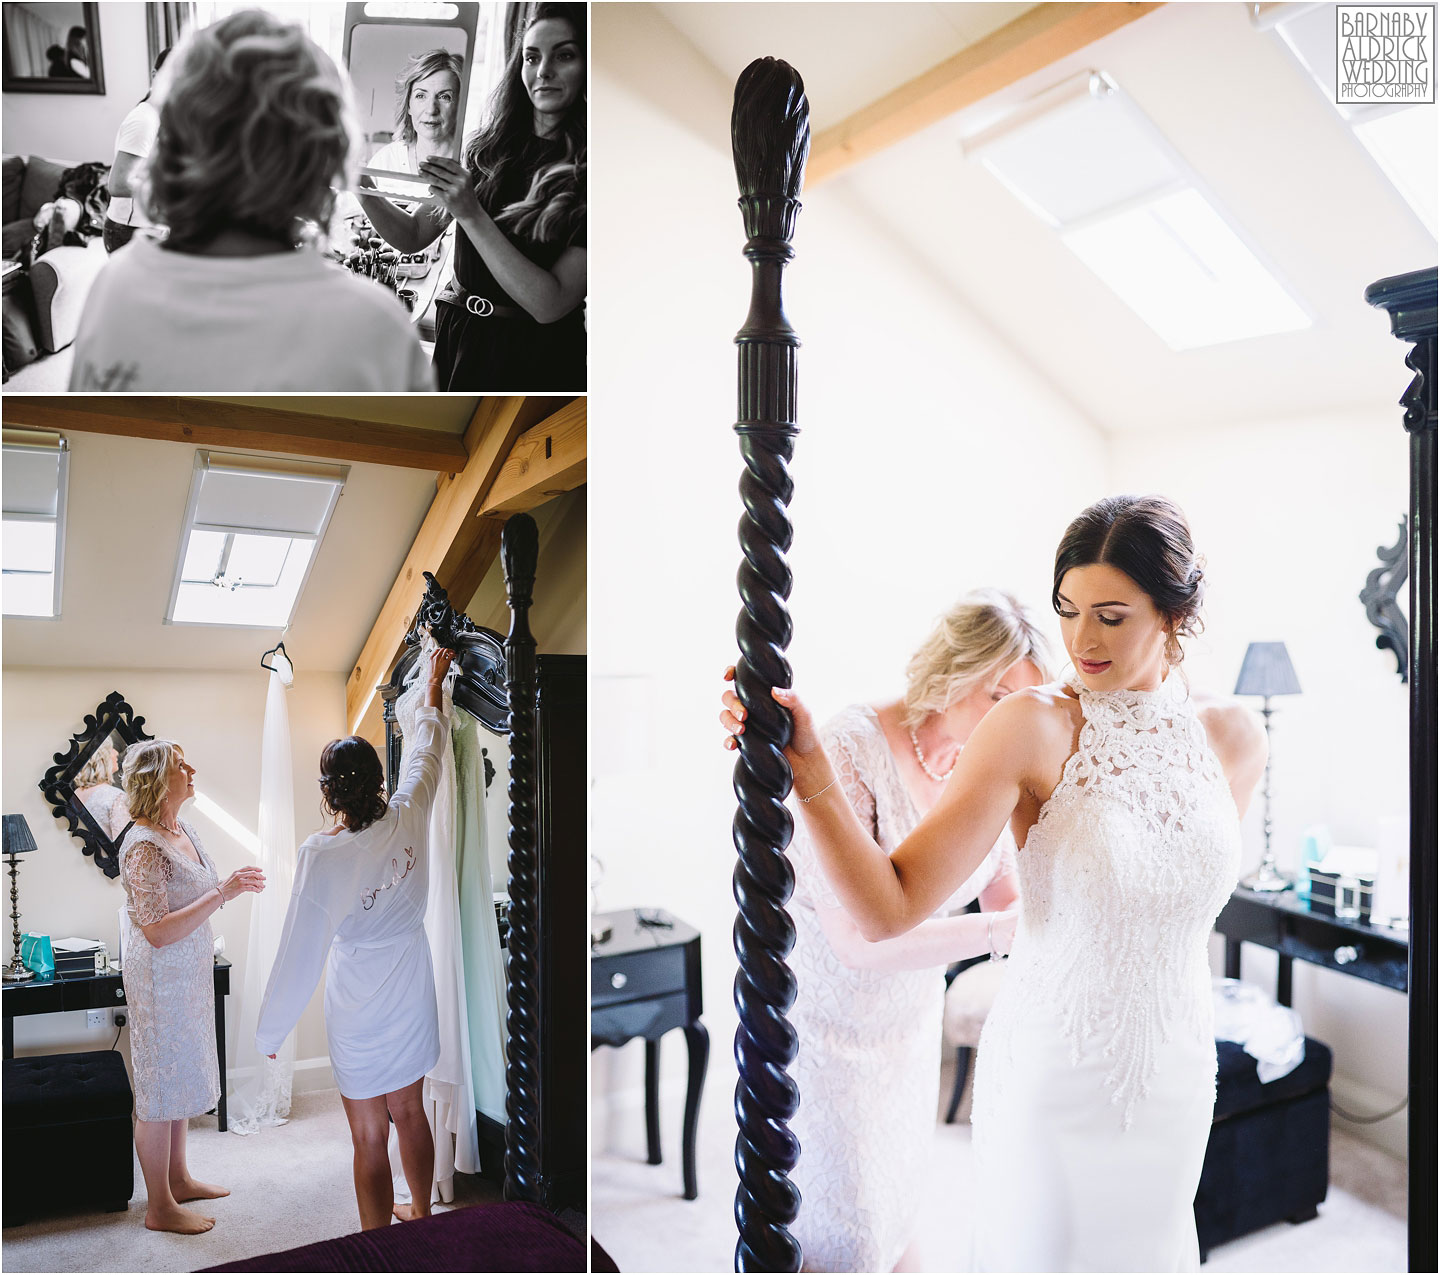 Bride getting into wedding dress, Priory Cottages Wetherby, Wedding venue Yorkshire